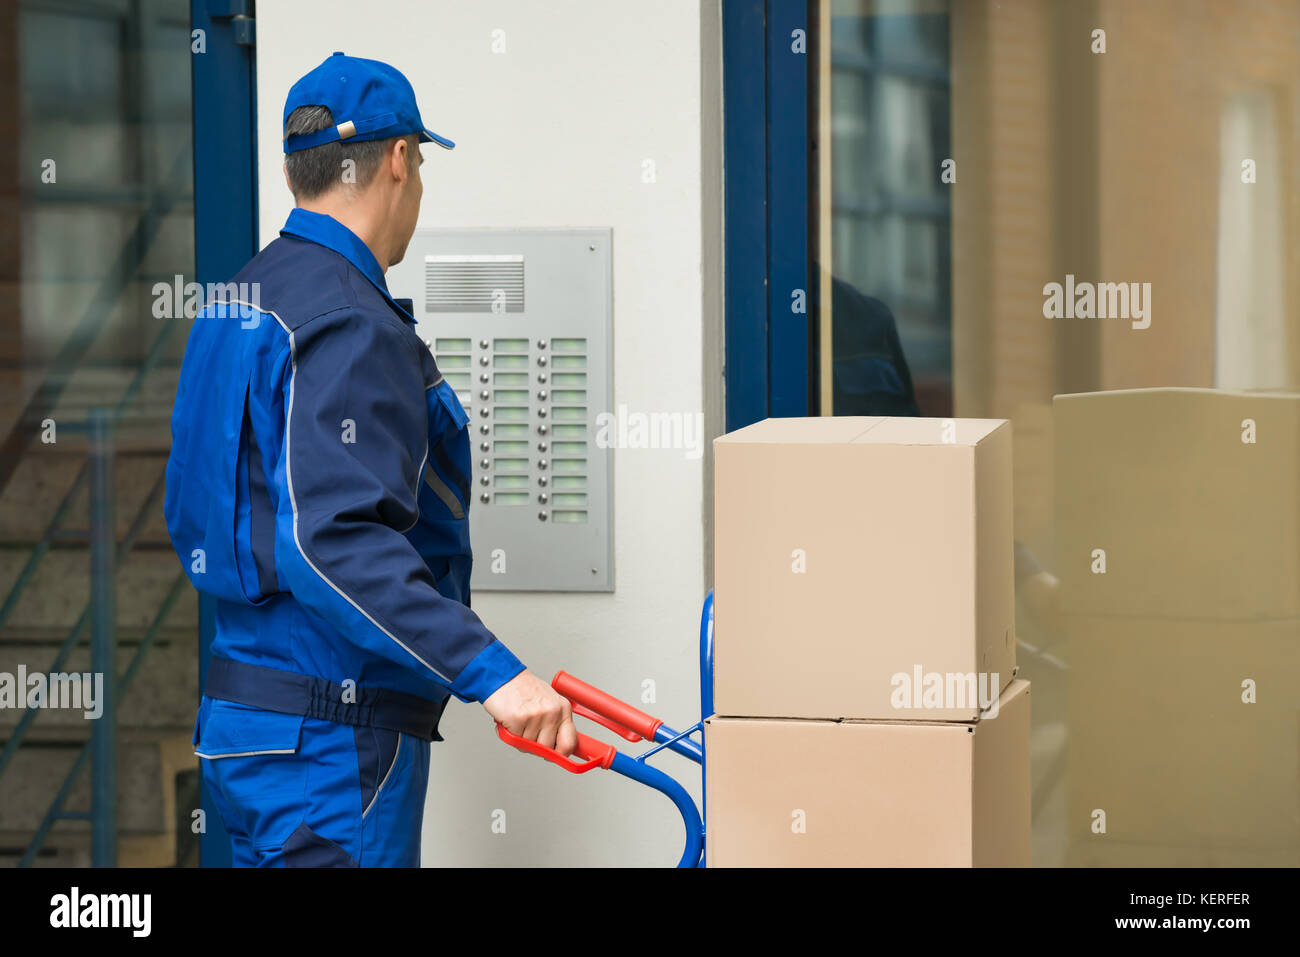 Delivery Man With Trolley Full Of Box Using Security To Enter Building - Stock Image